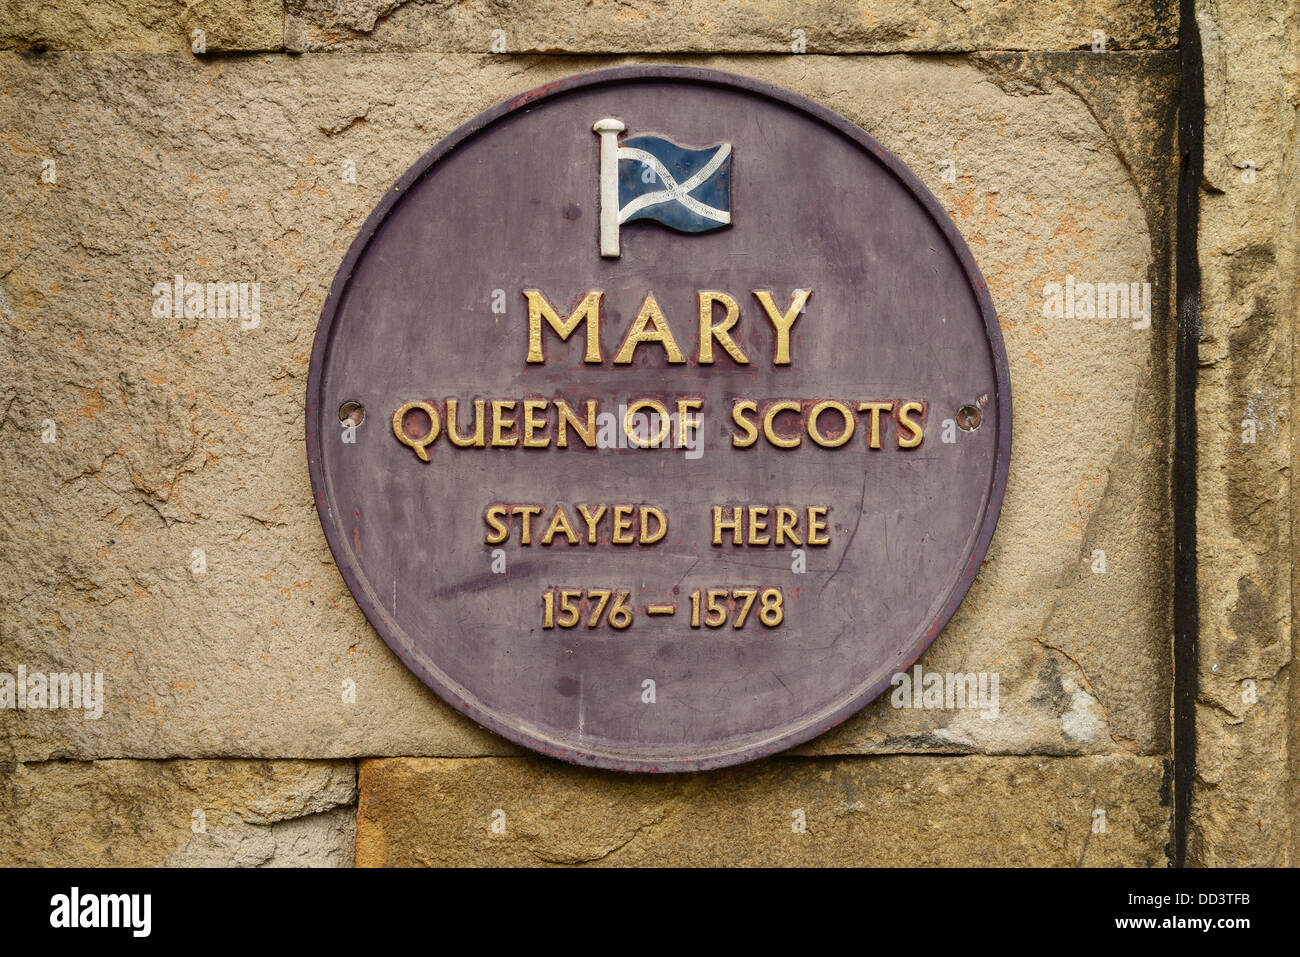 Round plaque outside the Old Hall Hotel Buxton stating Mary Queen of Scots stayed here - Stock Image